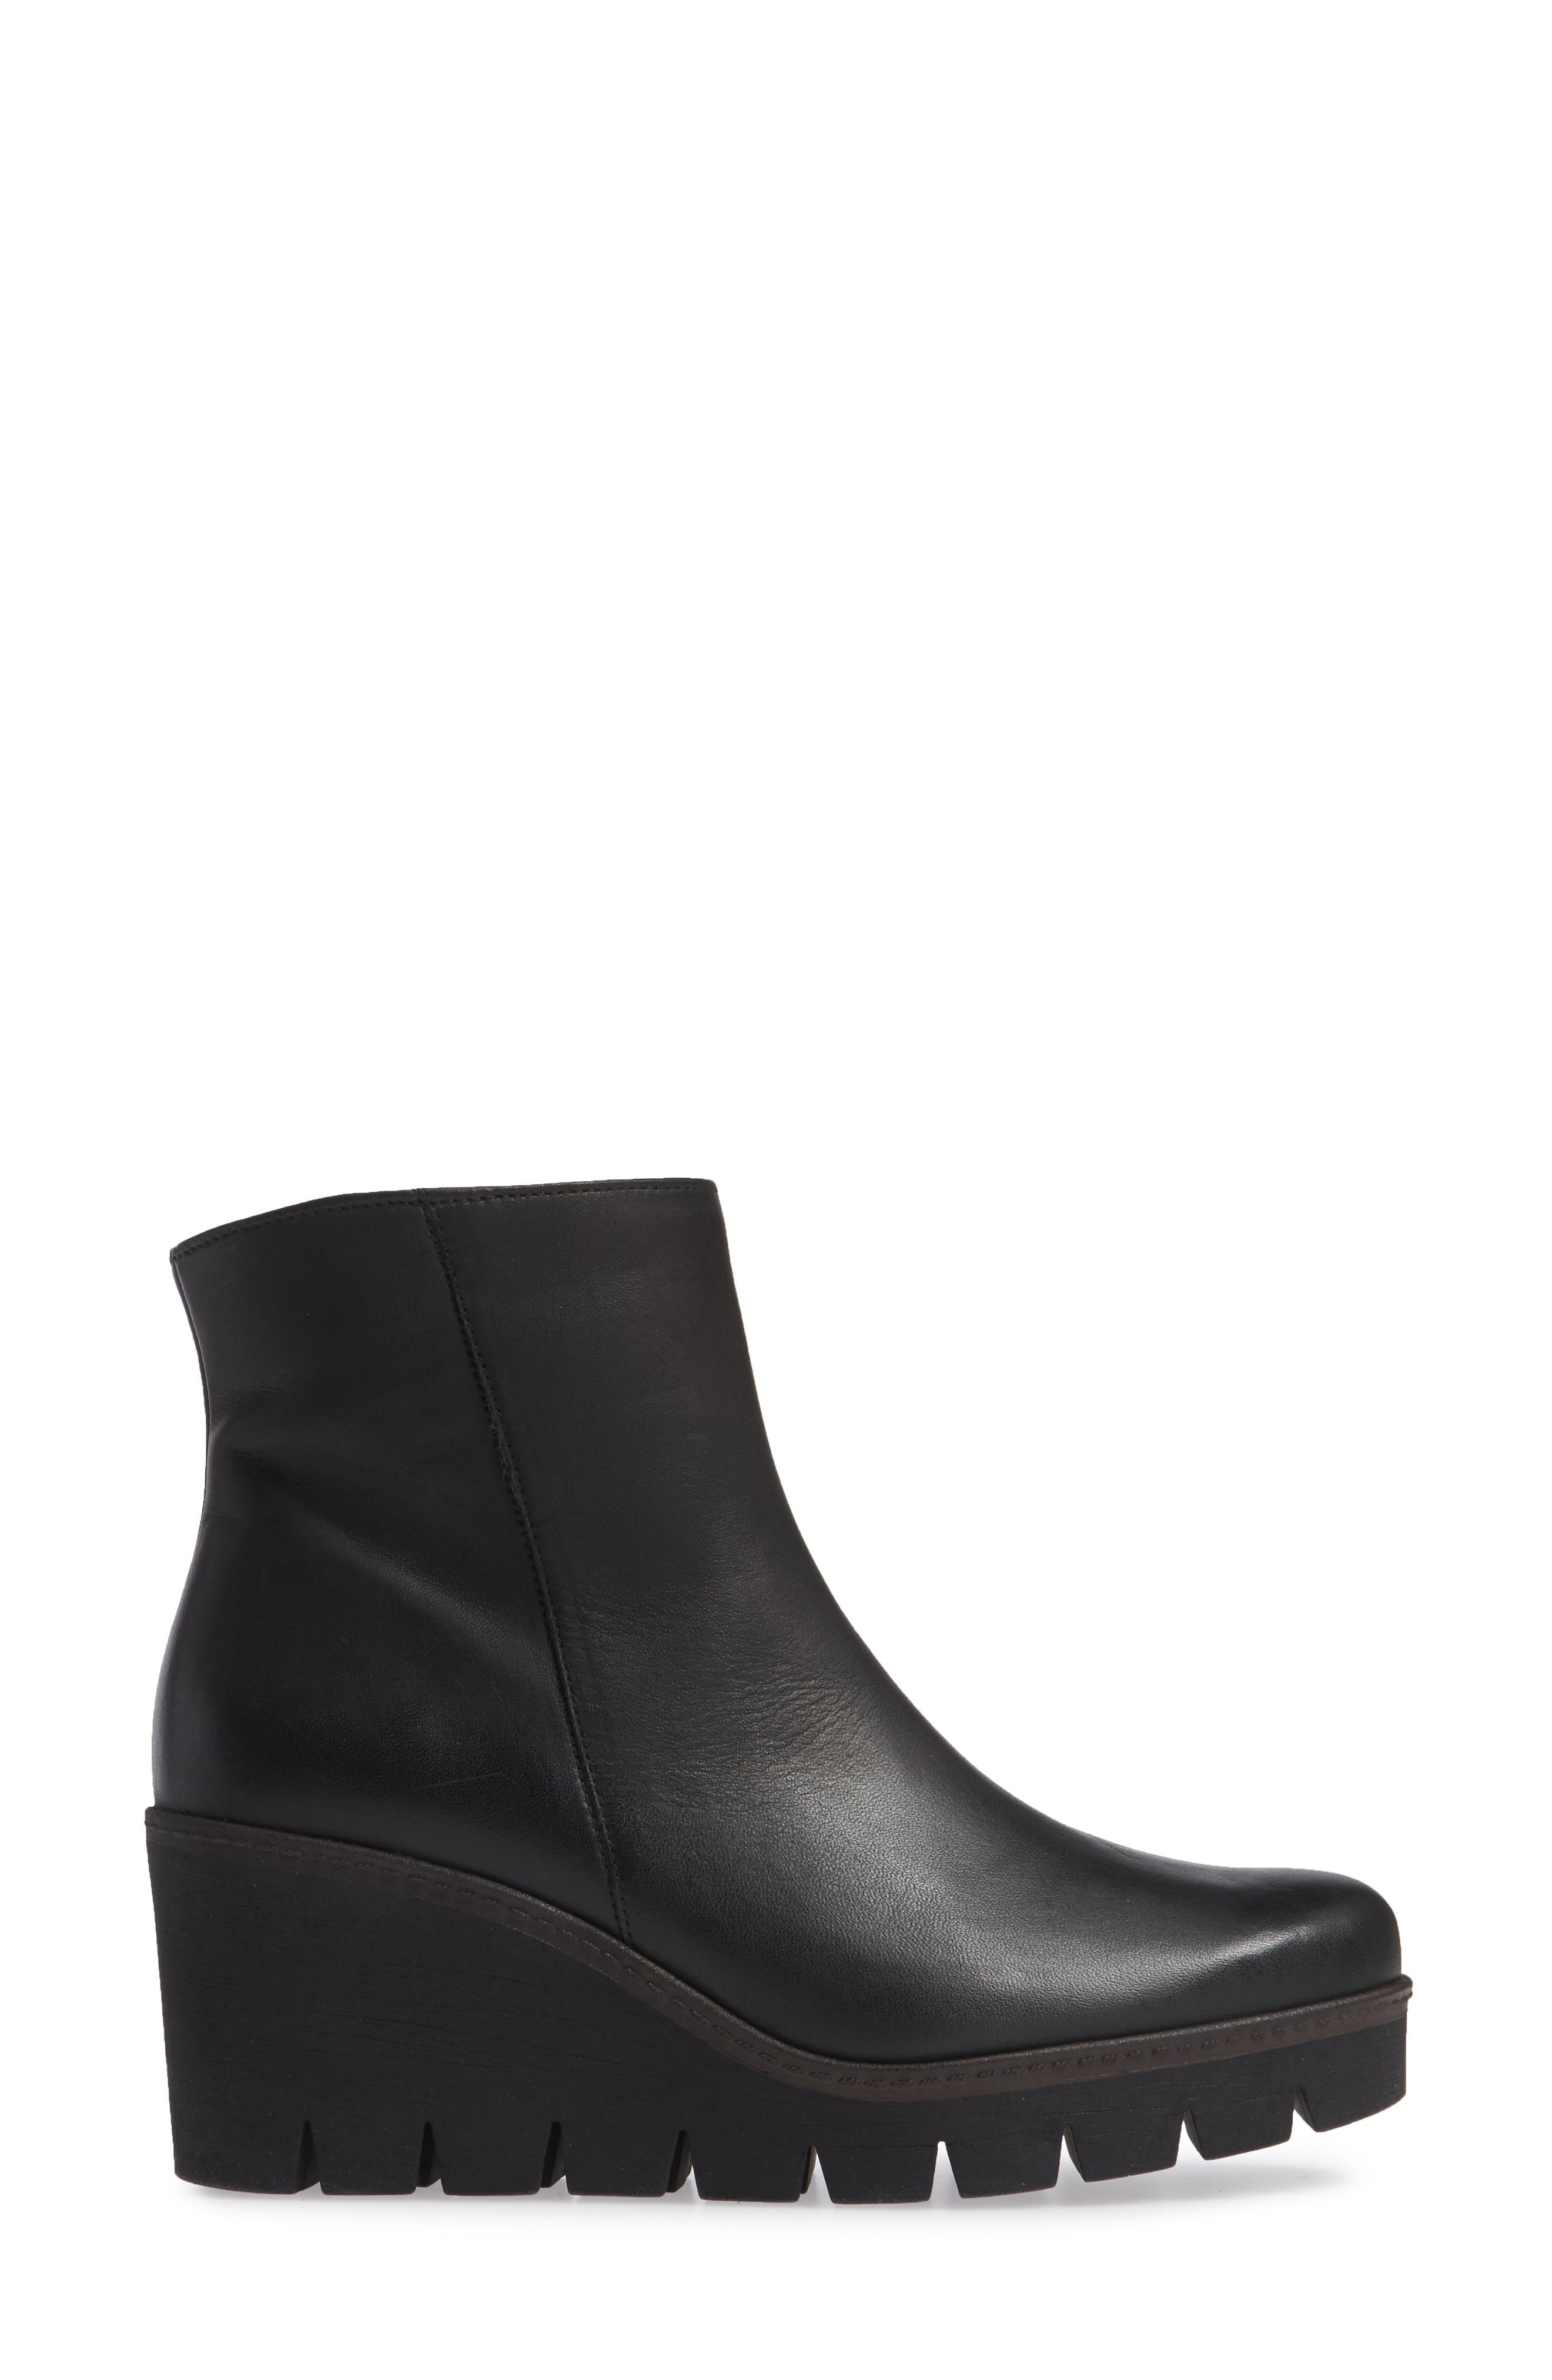 Friendly Wedge Bootie,                             Alternate thumbnail 3, color,                             BLACK LEATHER